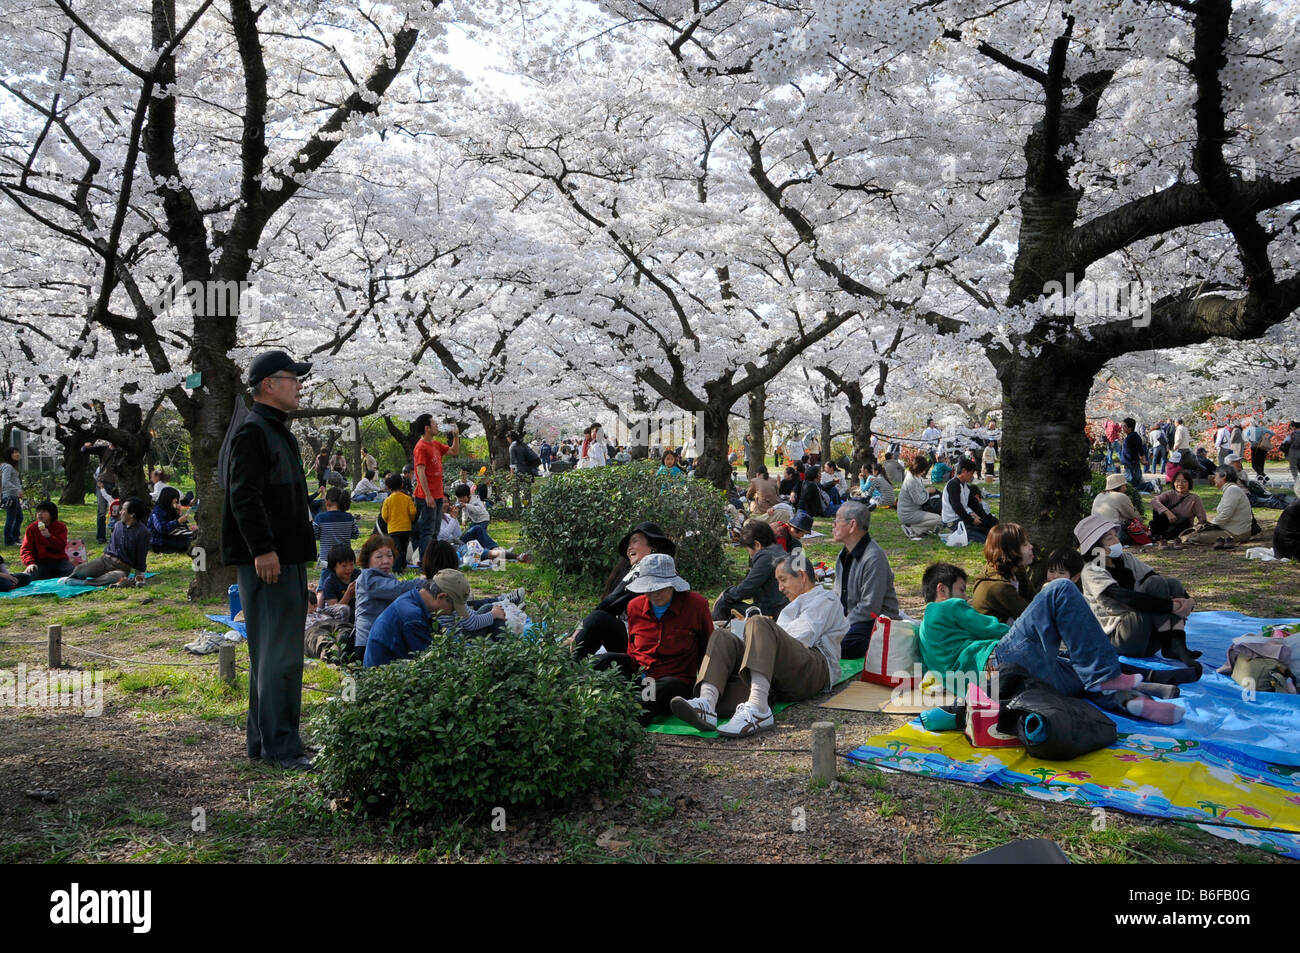 Japanese people celebrating the Cherry Blossom Festival under blossoming cherry trees in the botanical gardens, Stock Photo